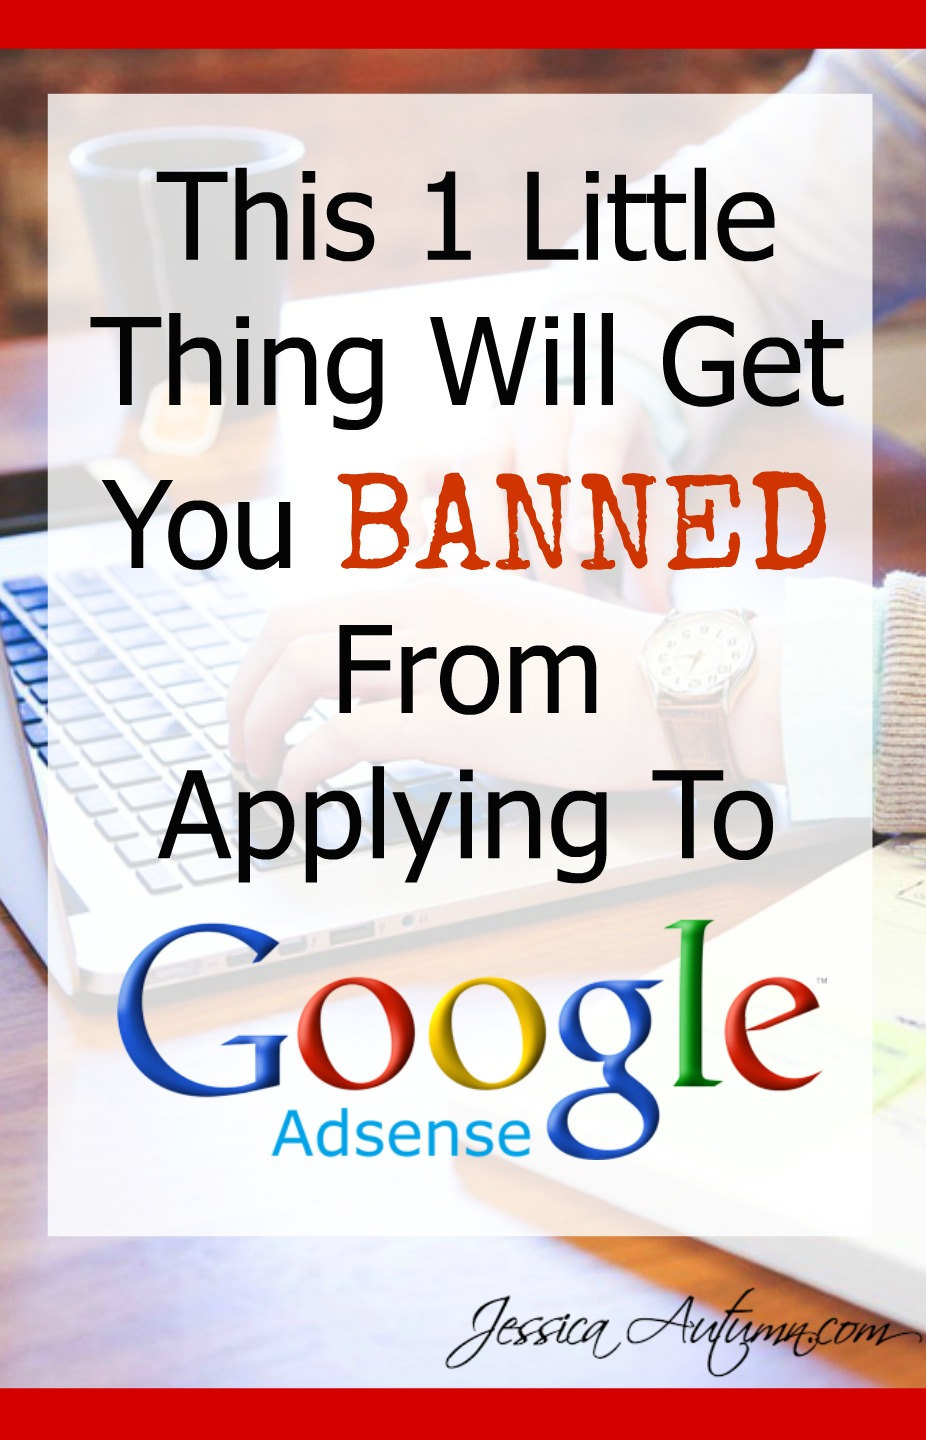 This 1 Thing Will Get You Banned From Applying To Google Adsense. Most people have heard of getting banned after you get accepted from Google Adsense, but be careful. This one thing could get you banned before you even get started.